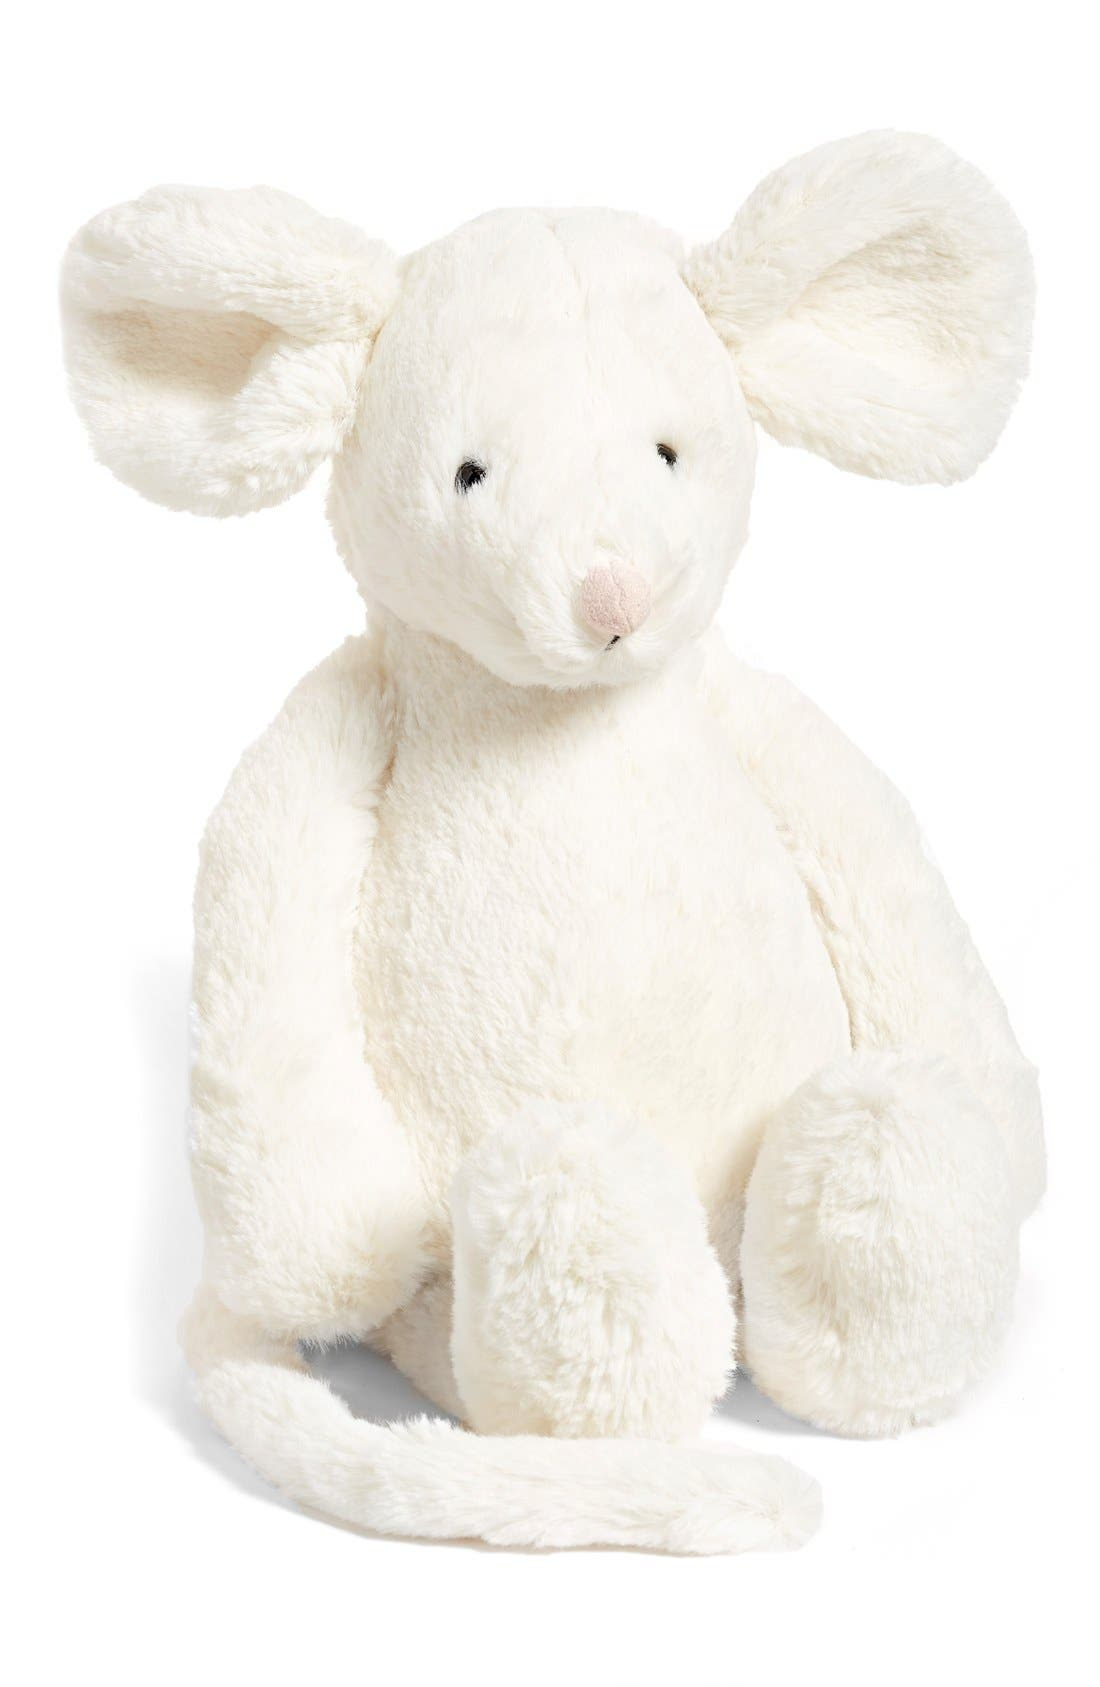 Main Image - Jellycat 'Medium Bashful Cream Mouse' Stuffed Animal